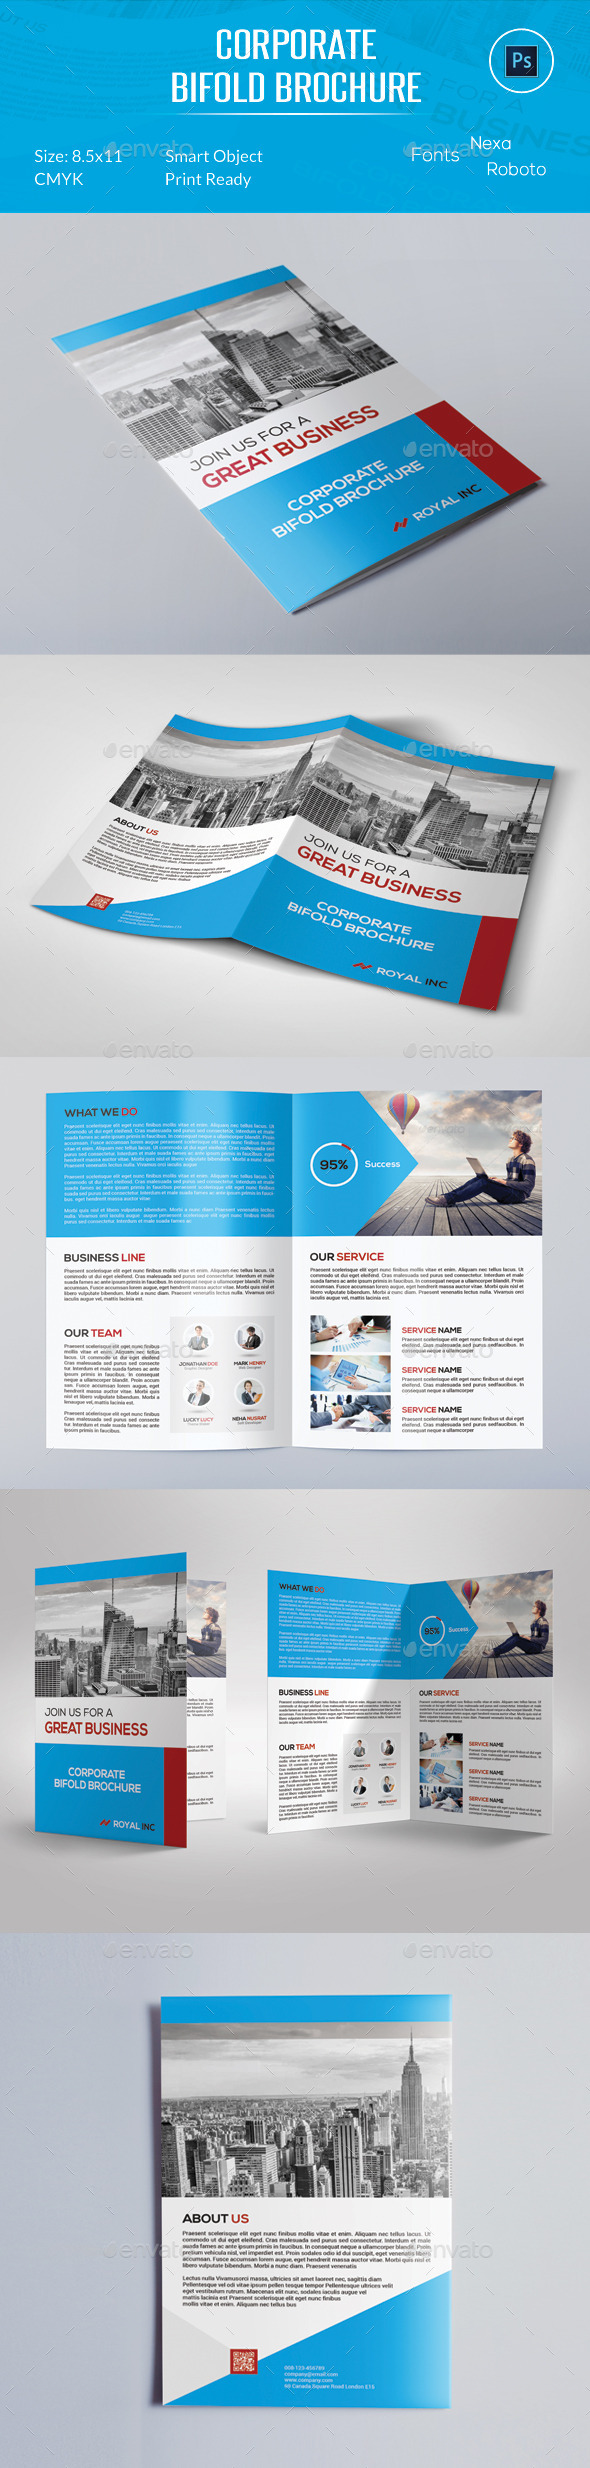 Corporate Bifold Brochure